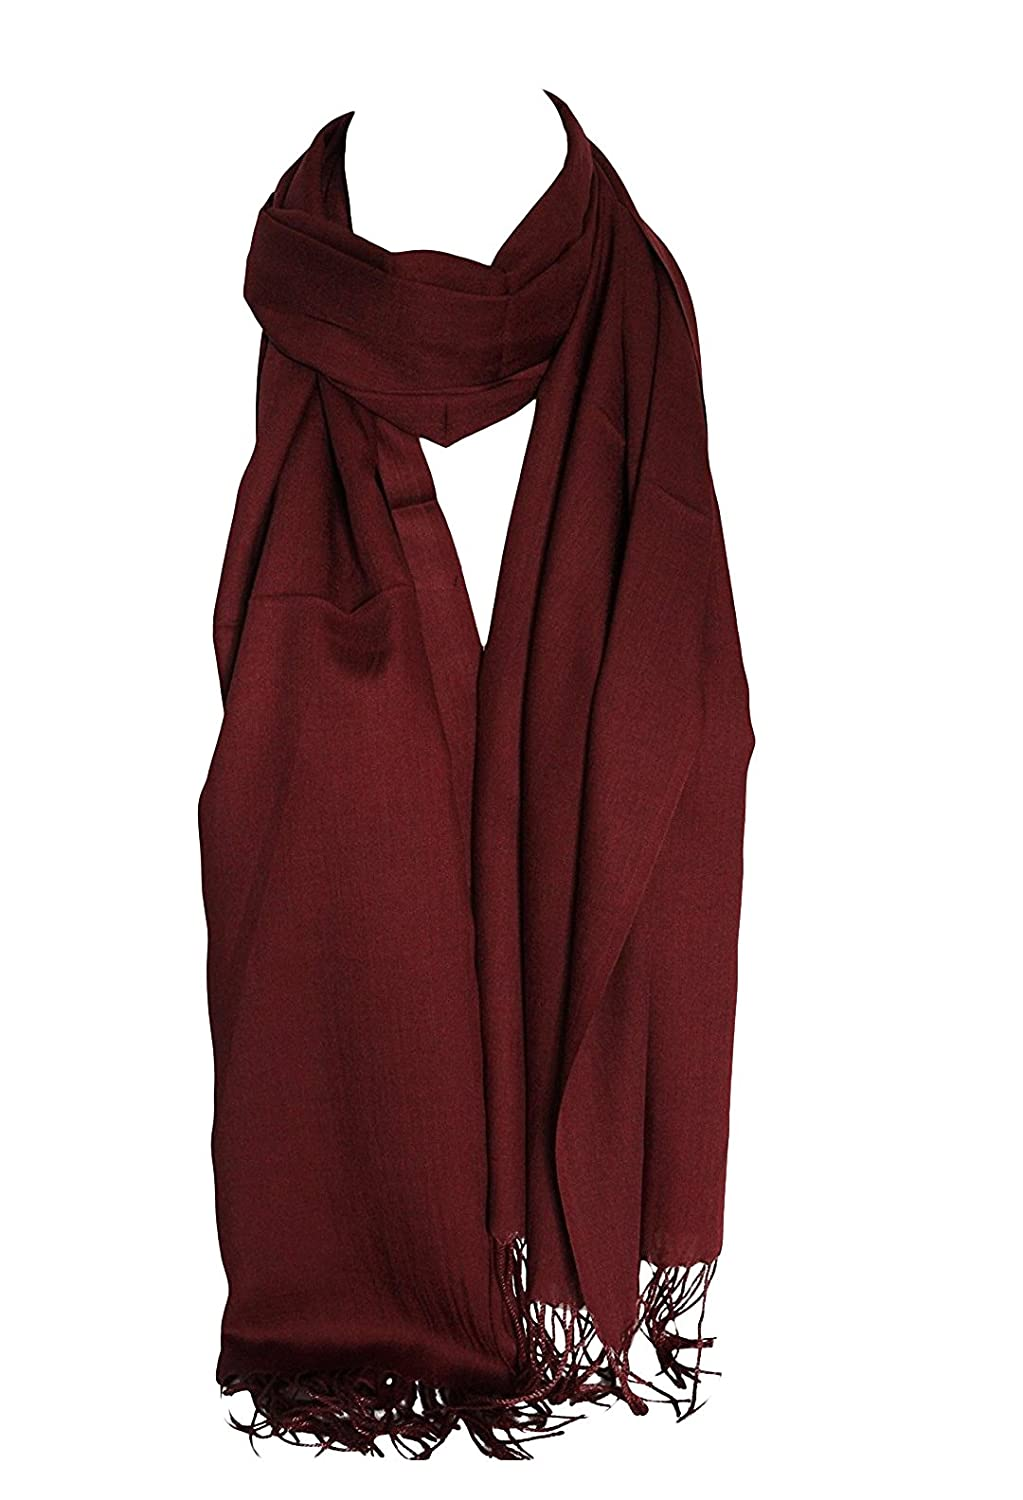 Plain Super Soft Feel Egyptian Cotton Scarves Shawl Stole Wrap Hijab Scarf (Maroon) Other